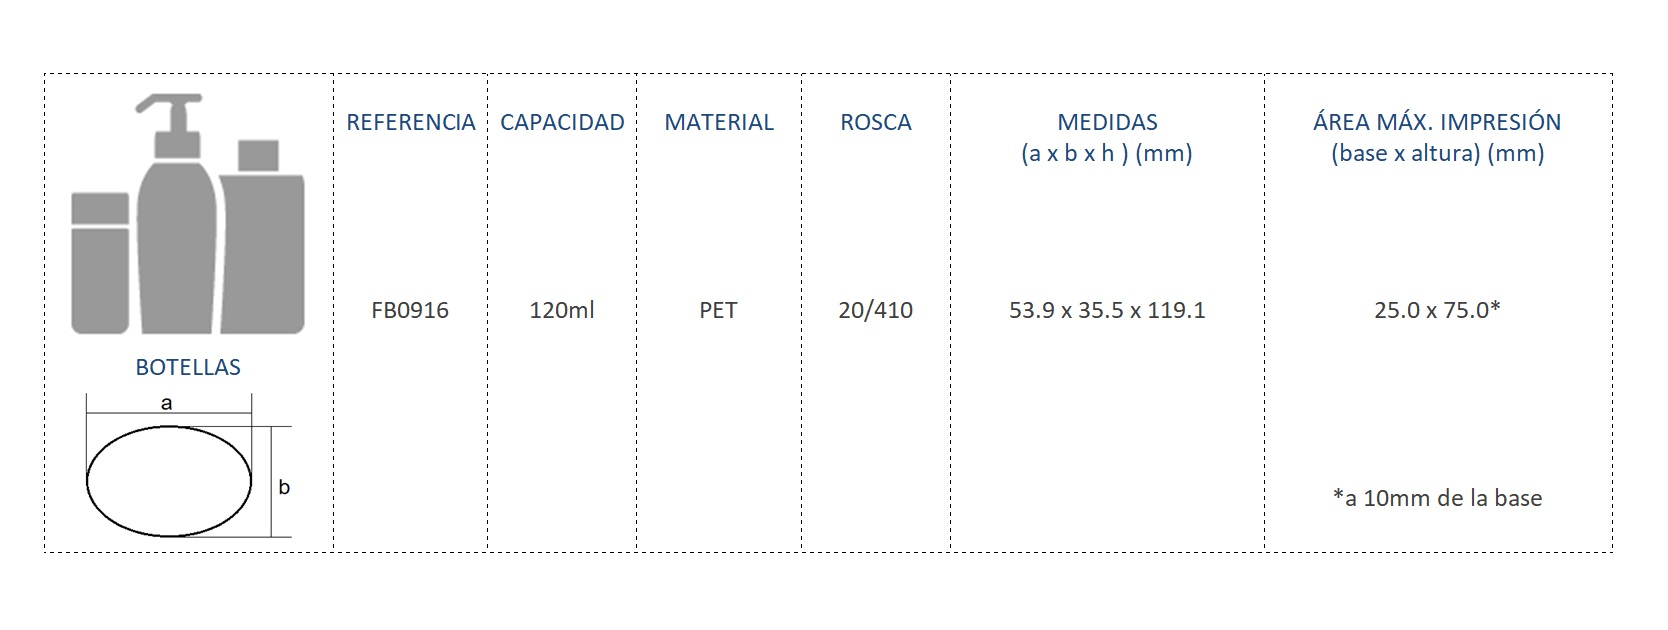 Cuadro de materiales botella FB0916